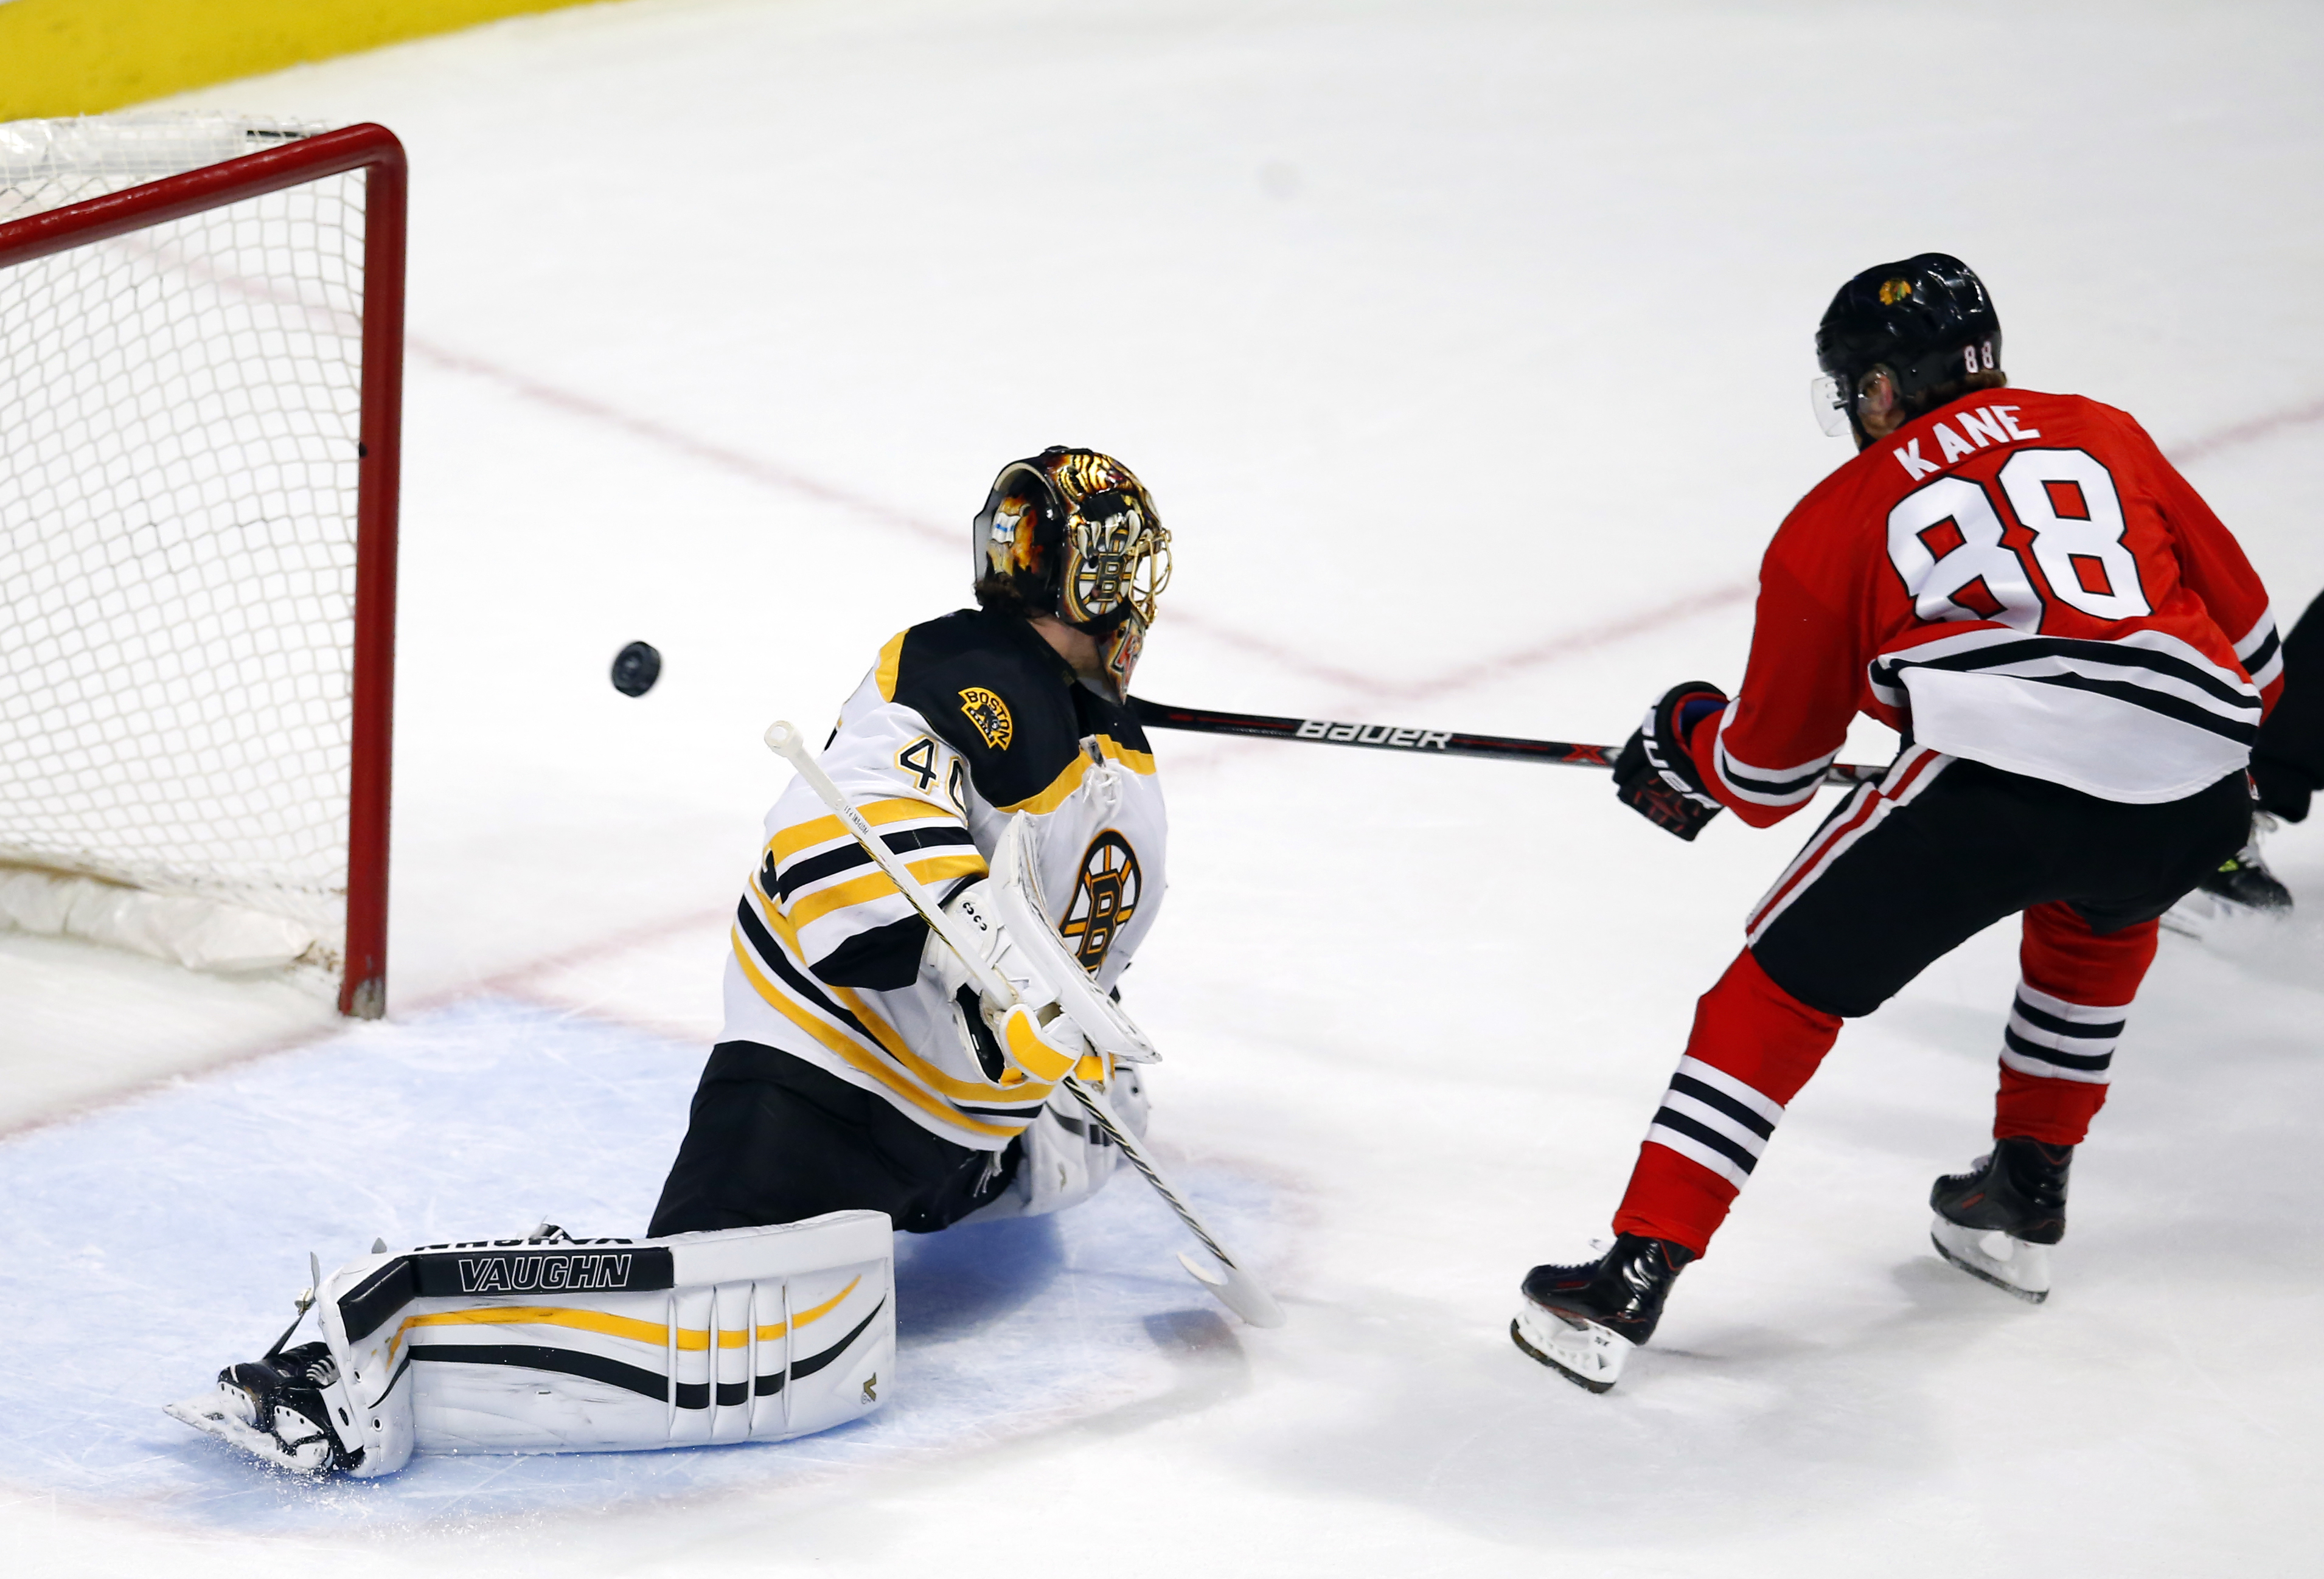 Chicago Blackhawks right wing Patrick Kane (88) scores a goal past Boston Bruins goalie Tuukka Rask (40) during the first period of an NHL hockey game Sunday, April 3, 2016, in Chicago. (AP Photo/Jeff Haynes)